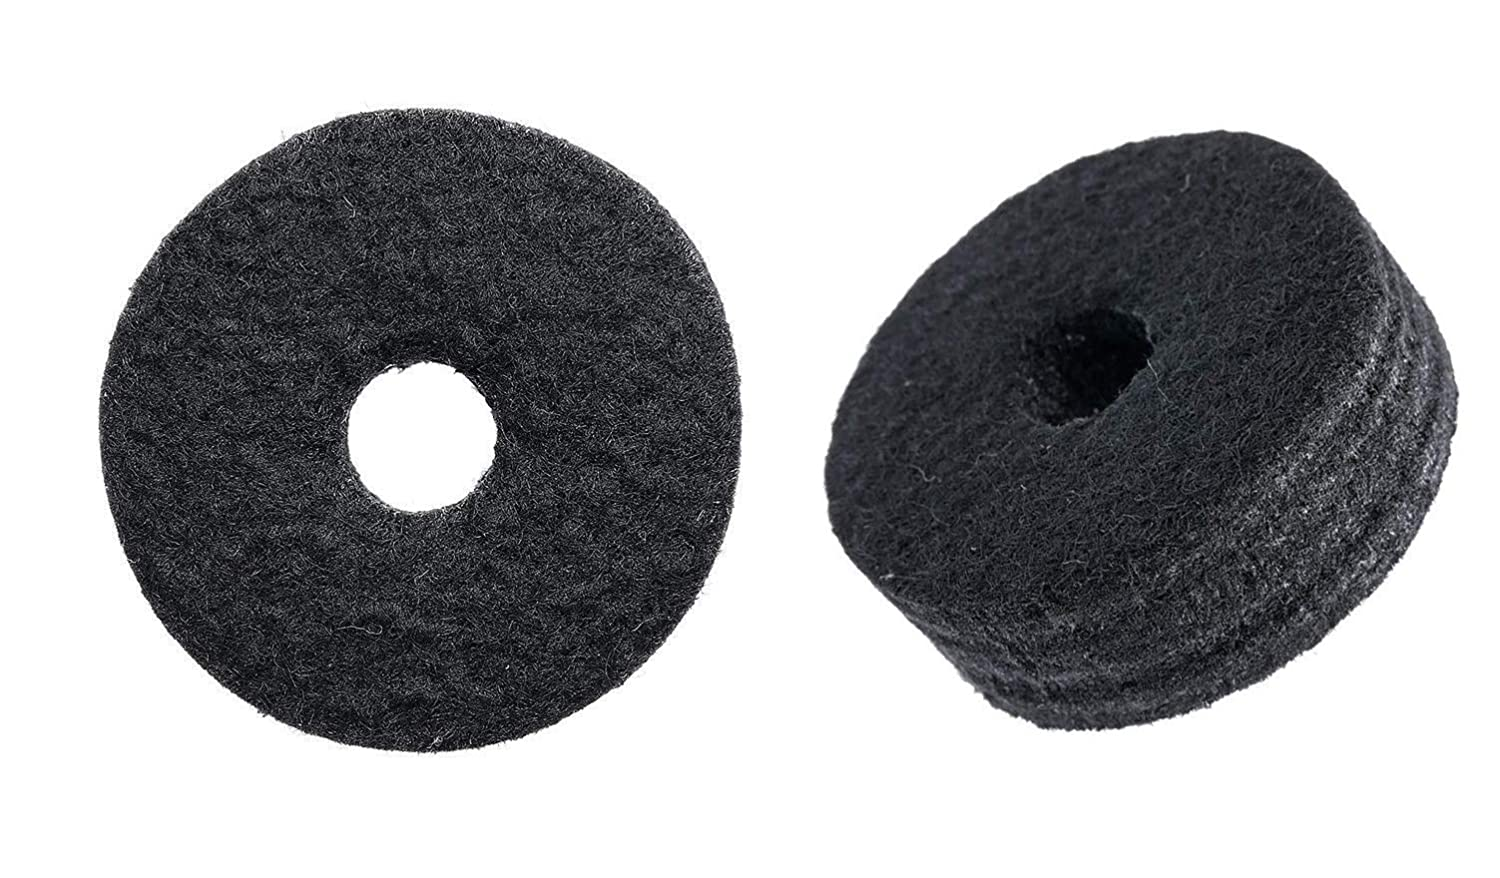 18 Pcs Cymbal Replacement Accessories Cymbal Felts Hi-Hat Clutch Felt Hi Hat Cup Felt Cymbal Sleeves with Cymbal Washer and Base Wing Nuts Replacement